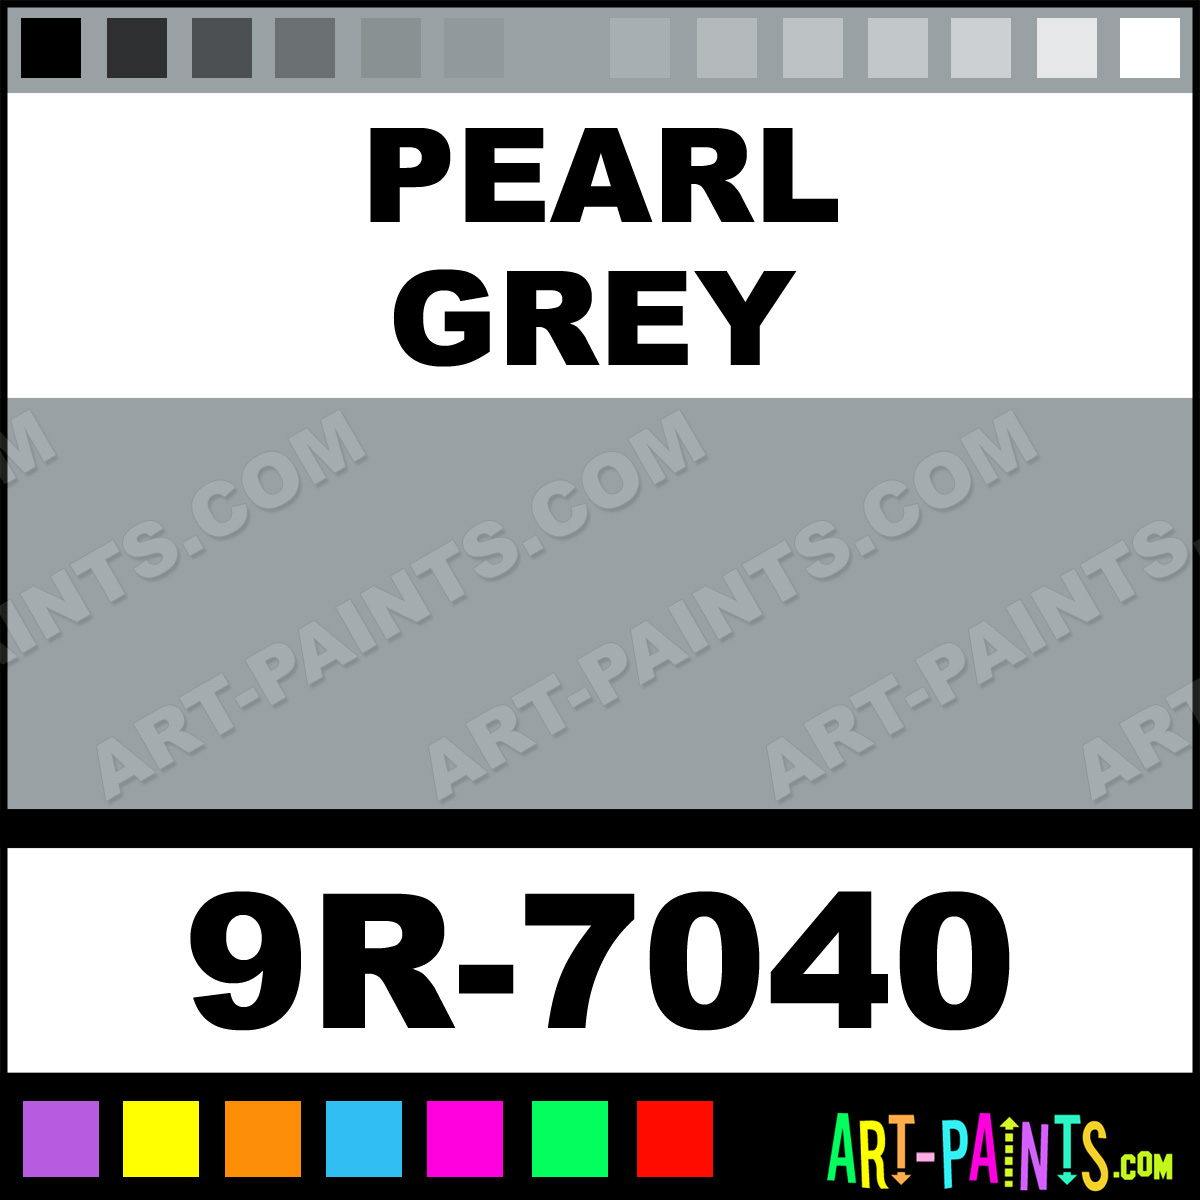 pearl grey 94 spray paints - 9r-7040 - pearl grey paint, pearl